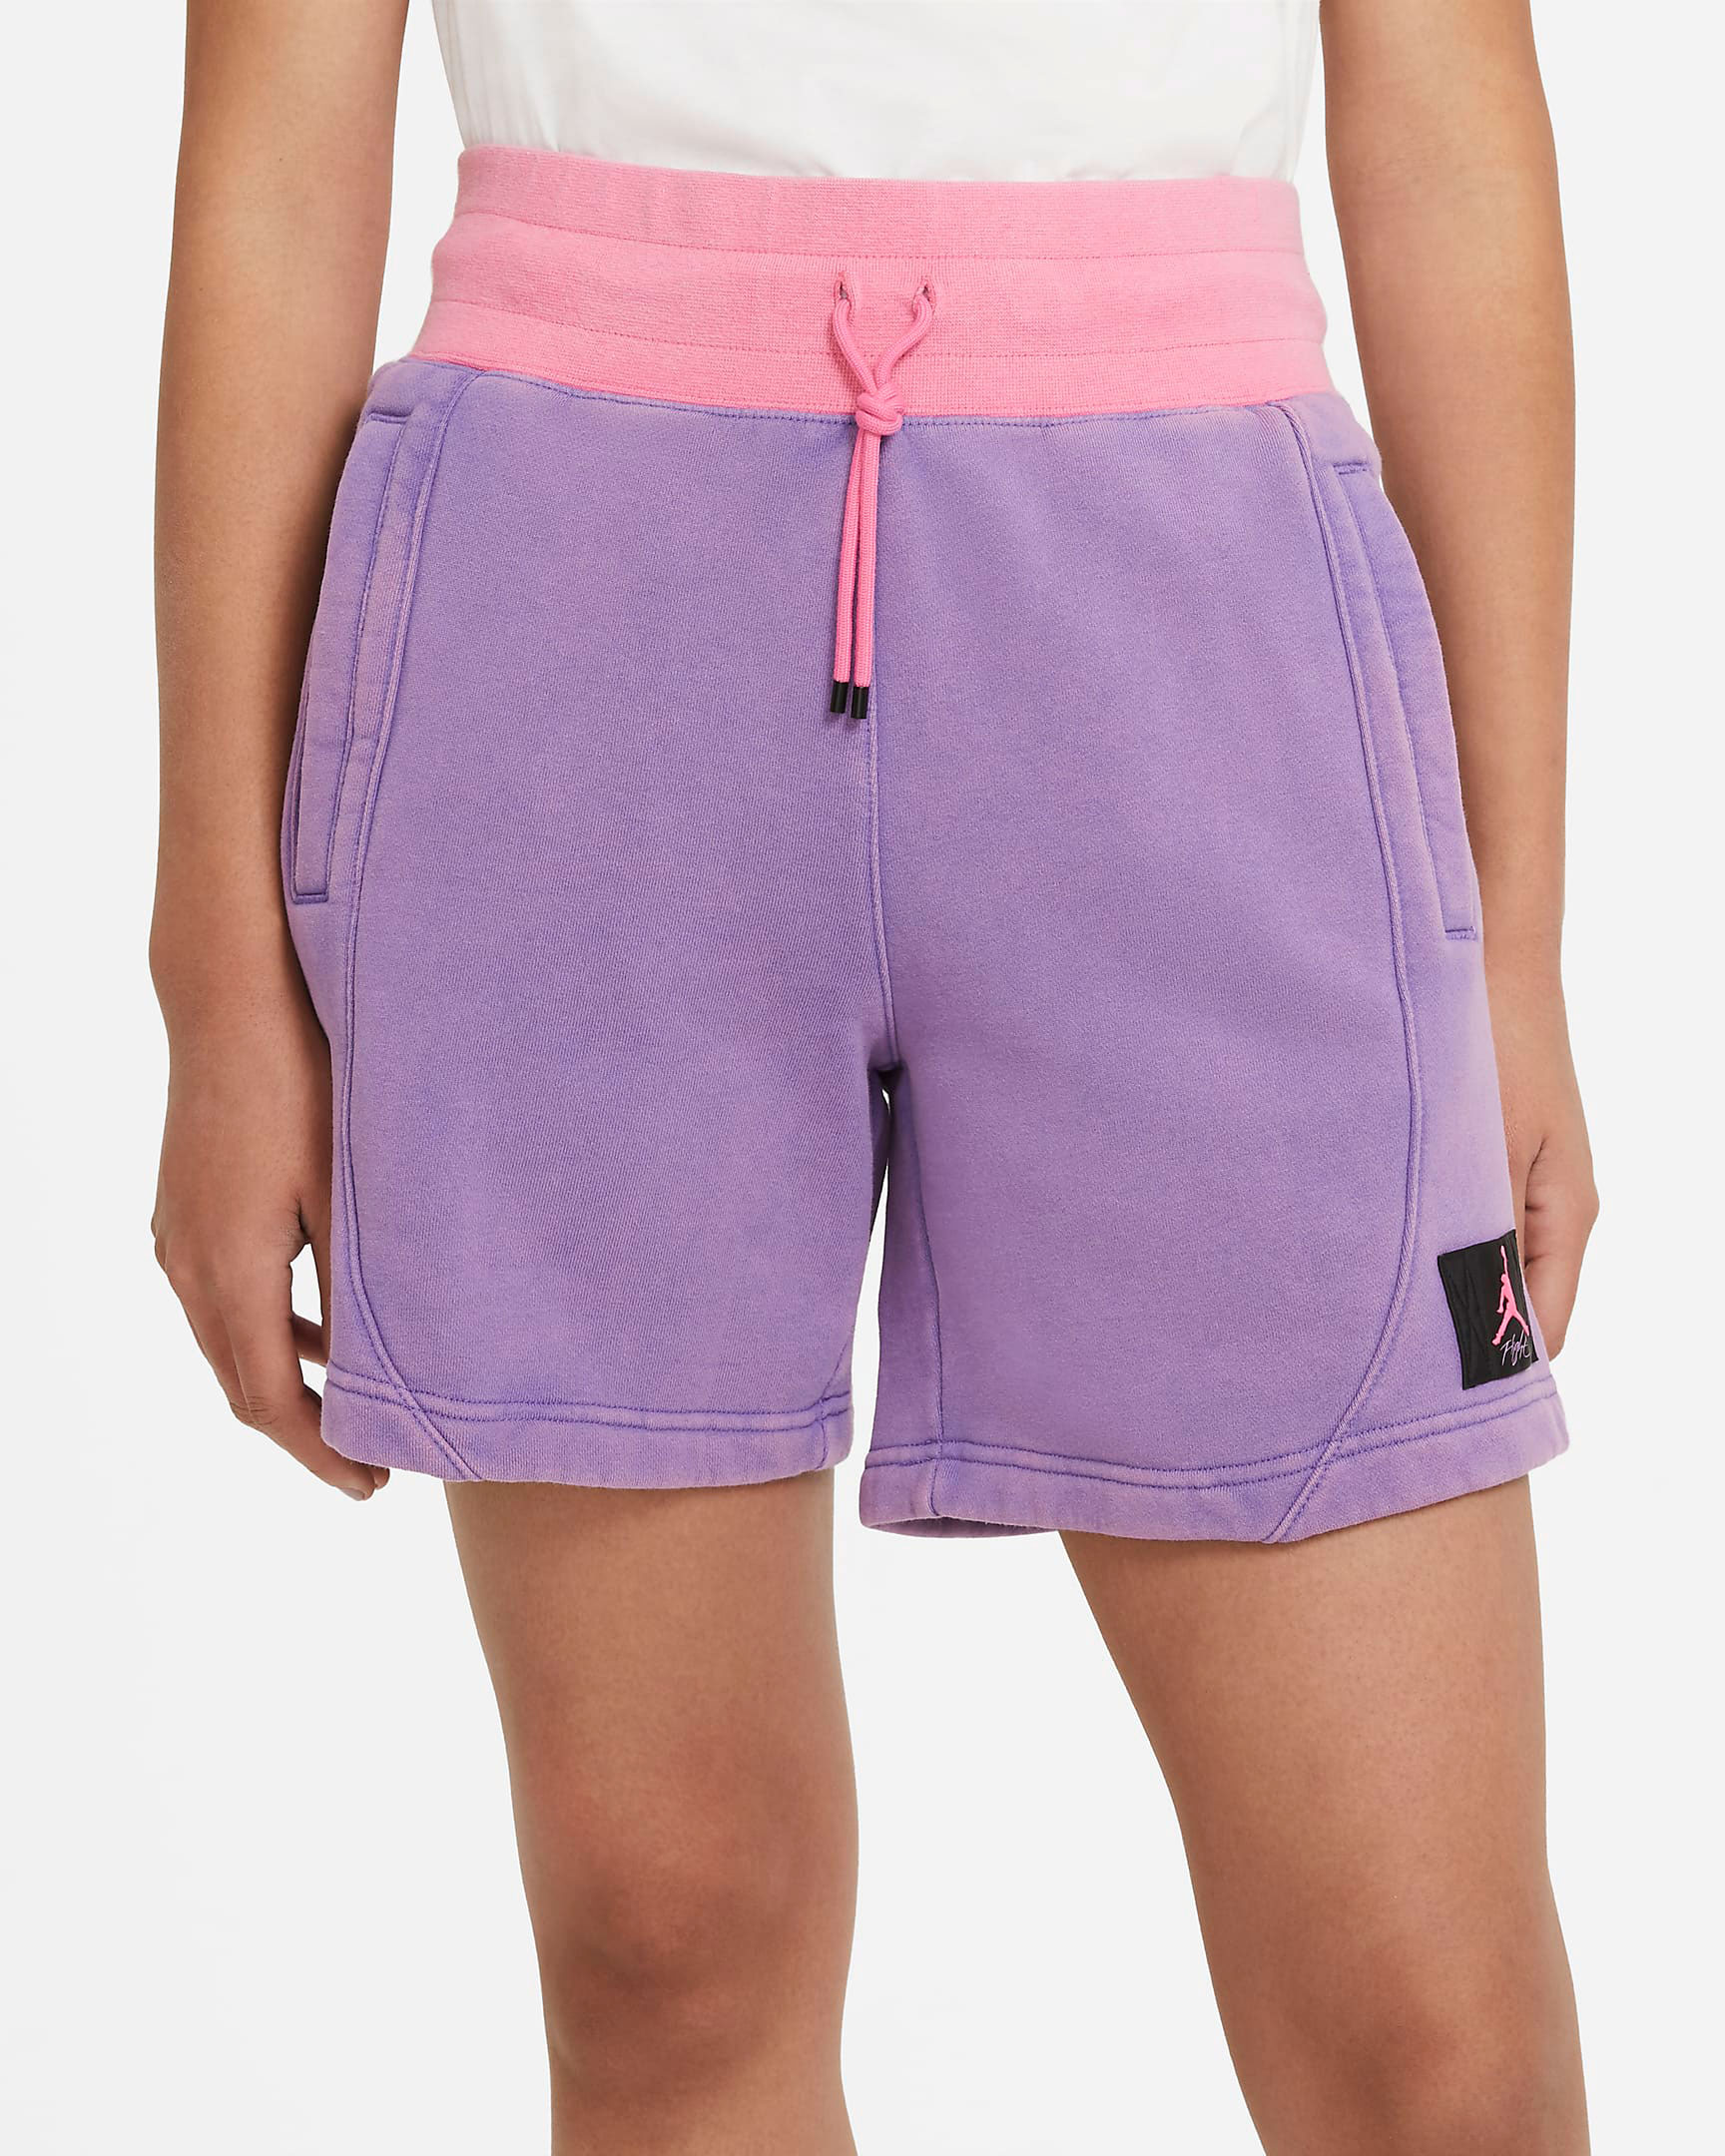 jordan-flight-womens-shorts-purple-pink-1